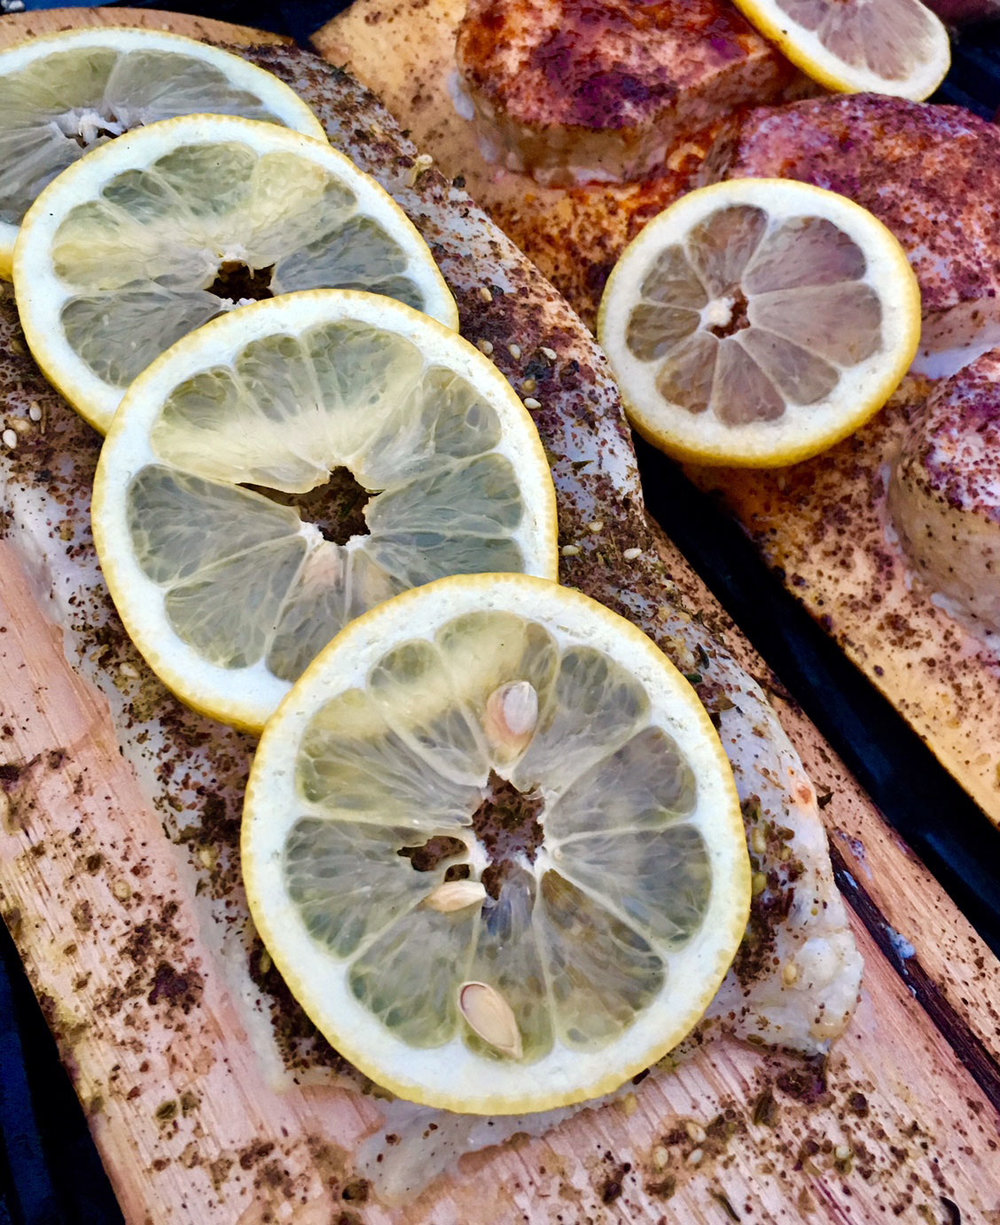 Wood-Plank-Grilled-Fish.jpg